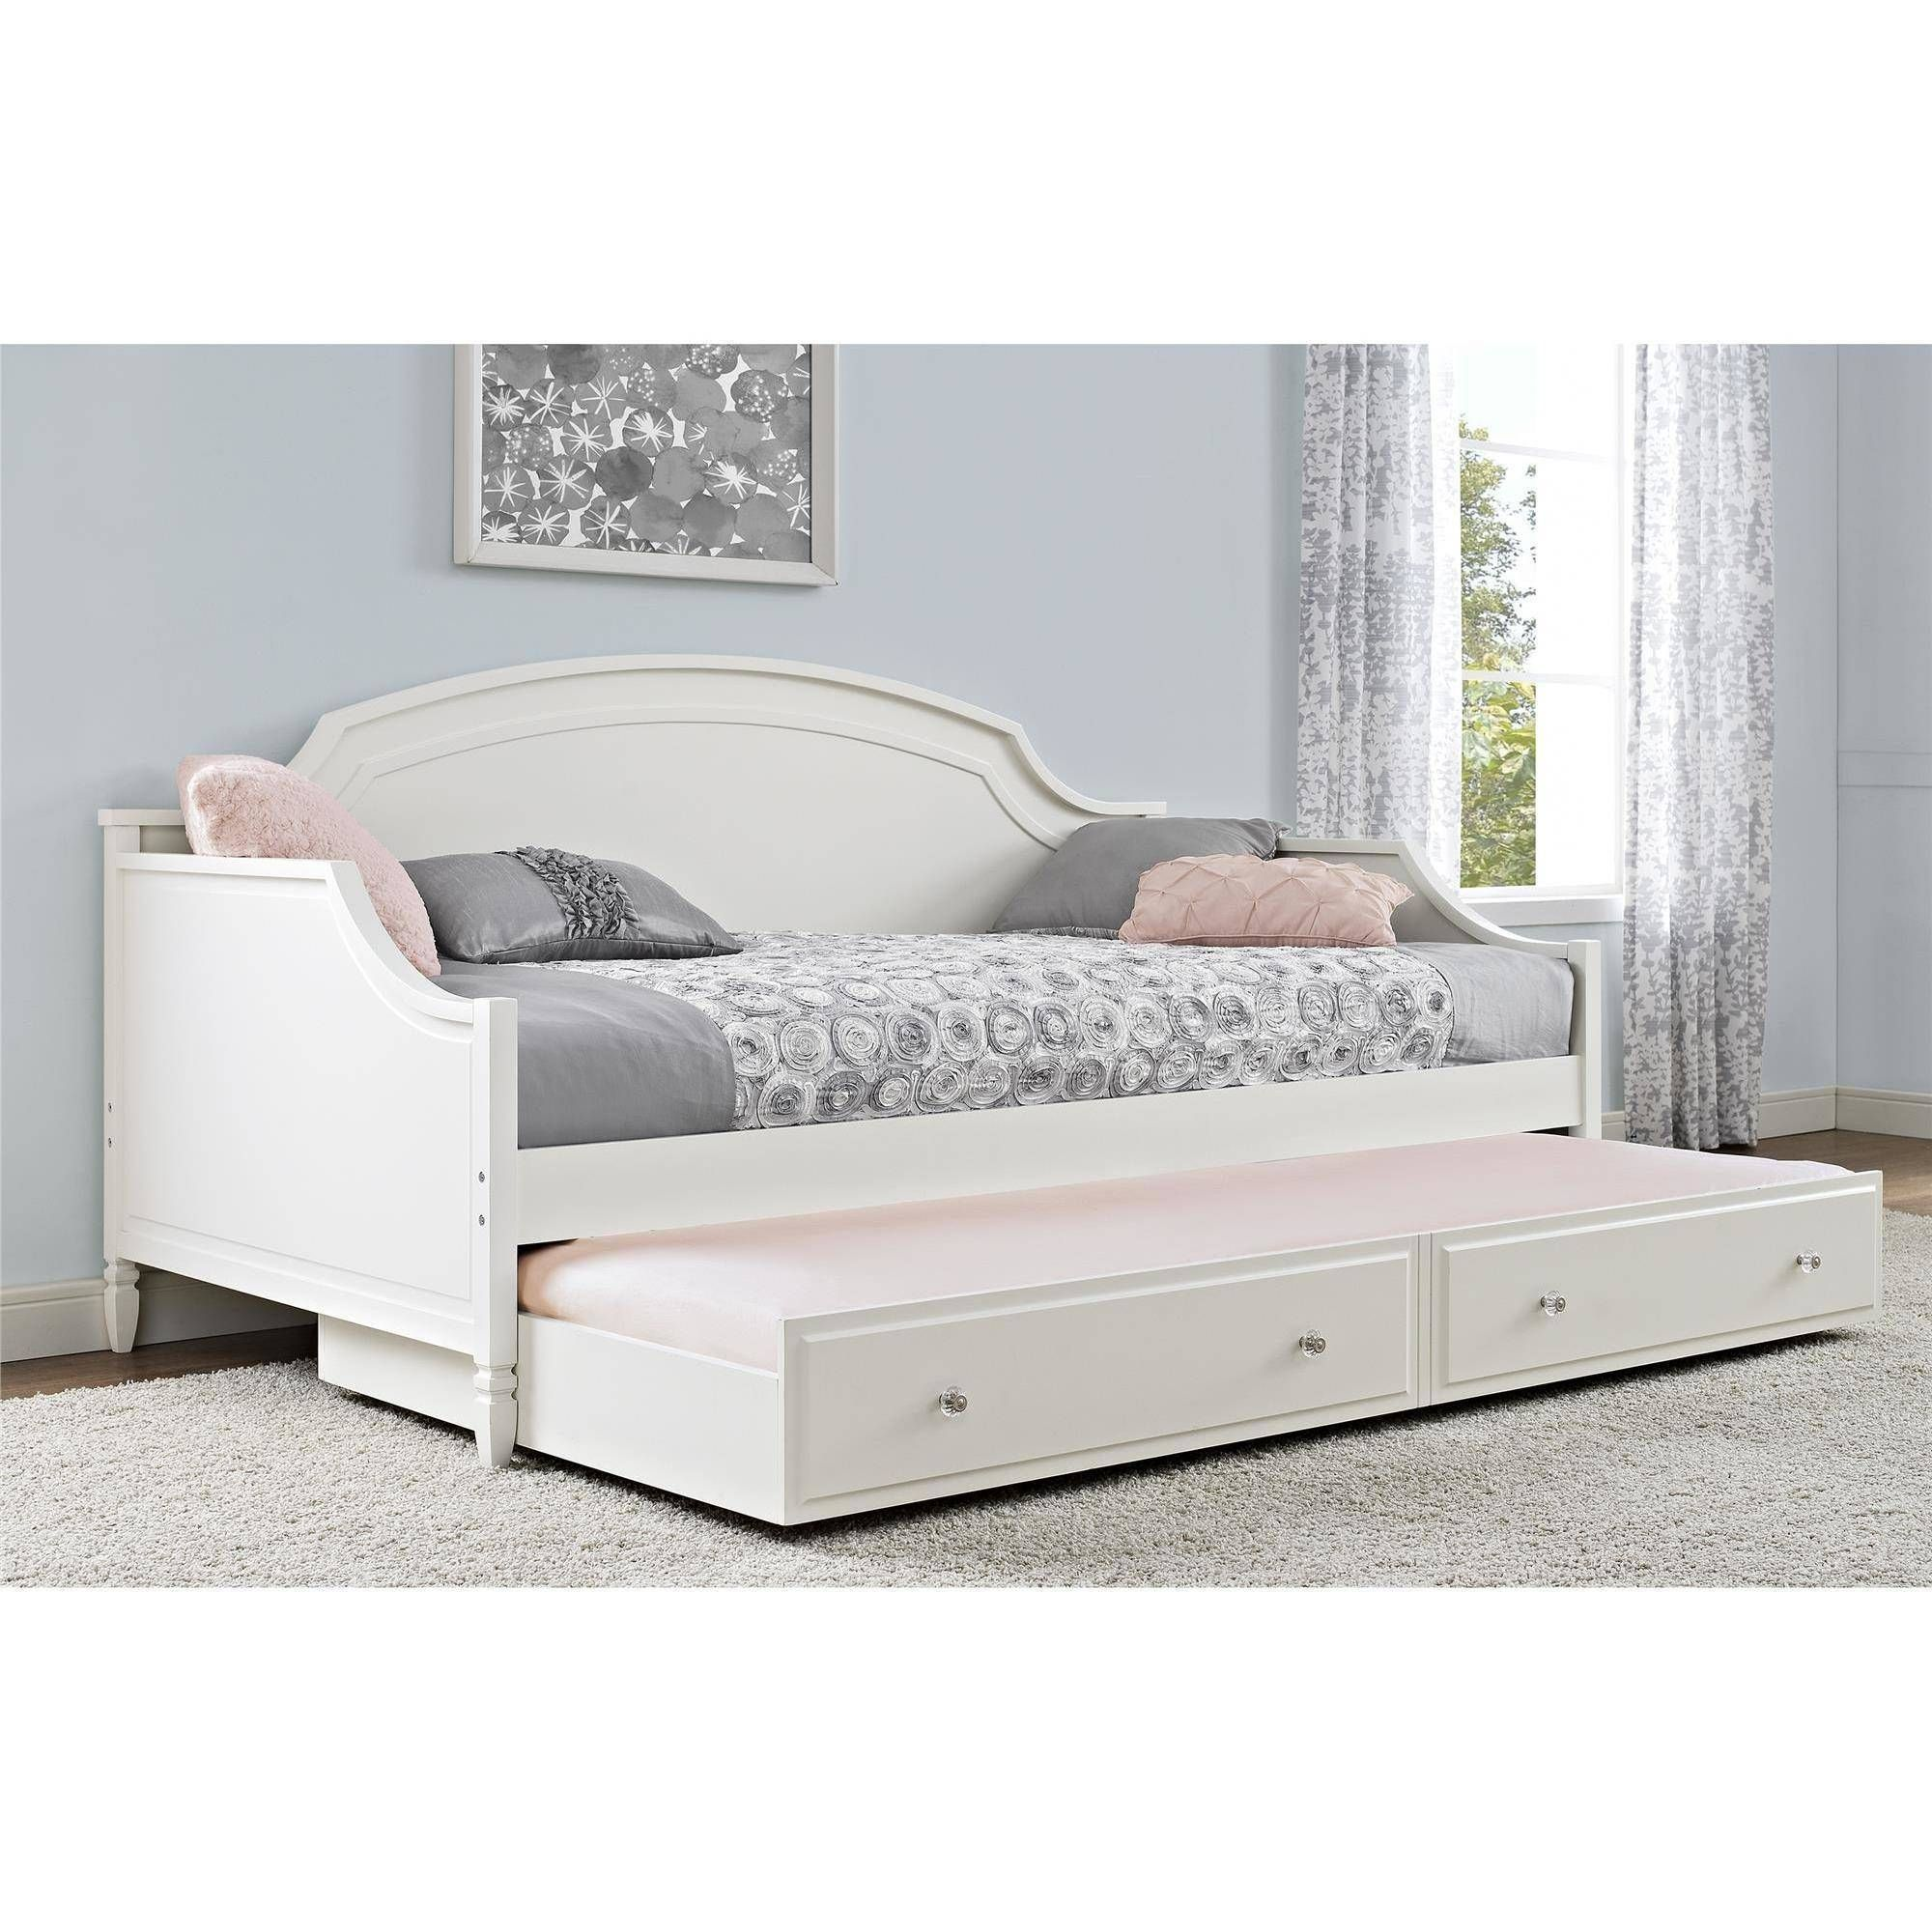 Home Daybed room, Girls daybed, Guest room office